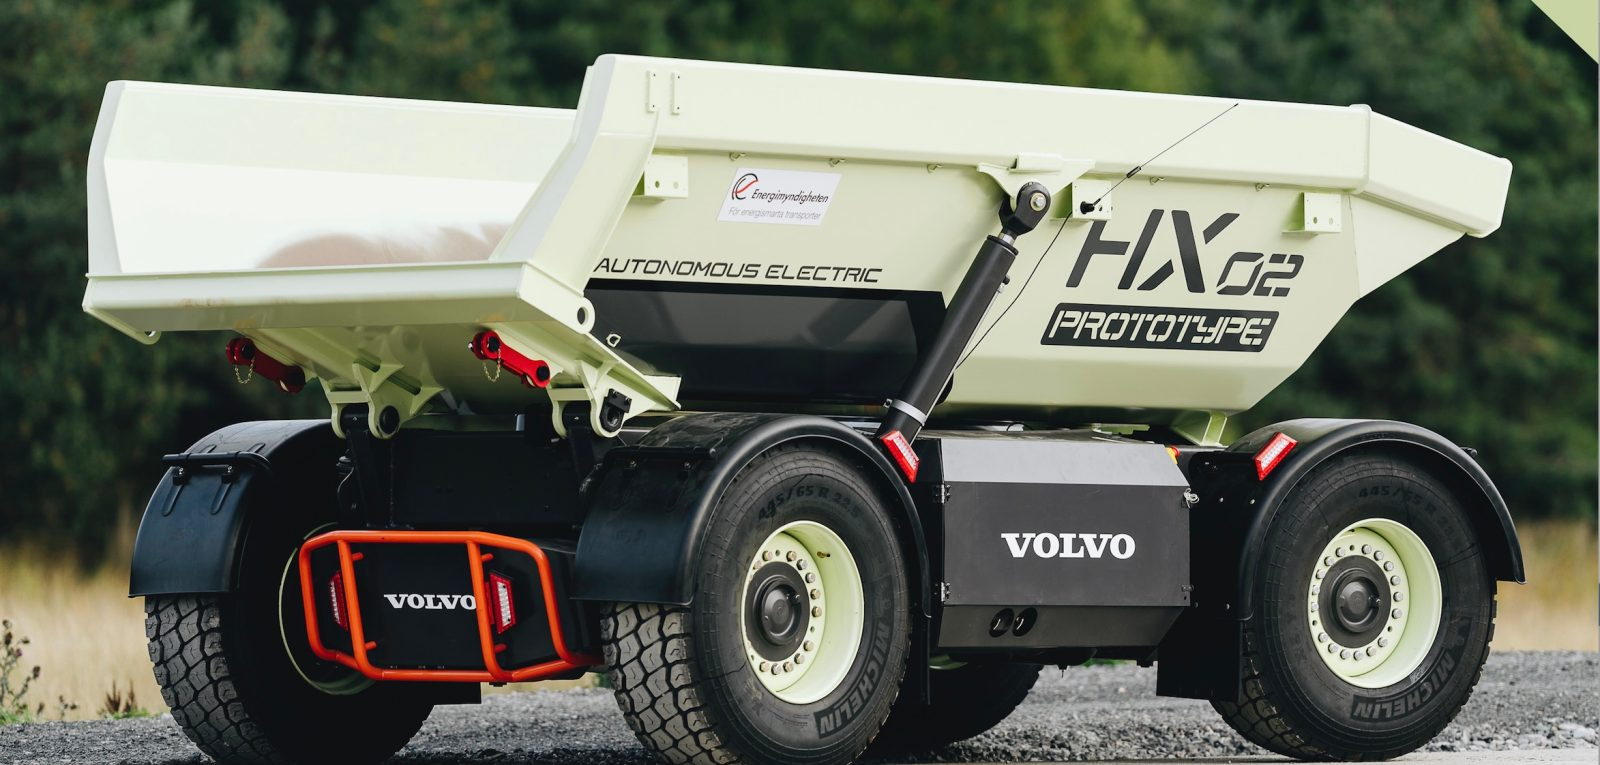 Volvo deploys several new electric mining vehicle prototypes